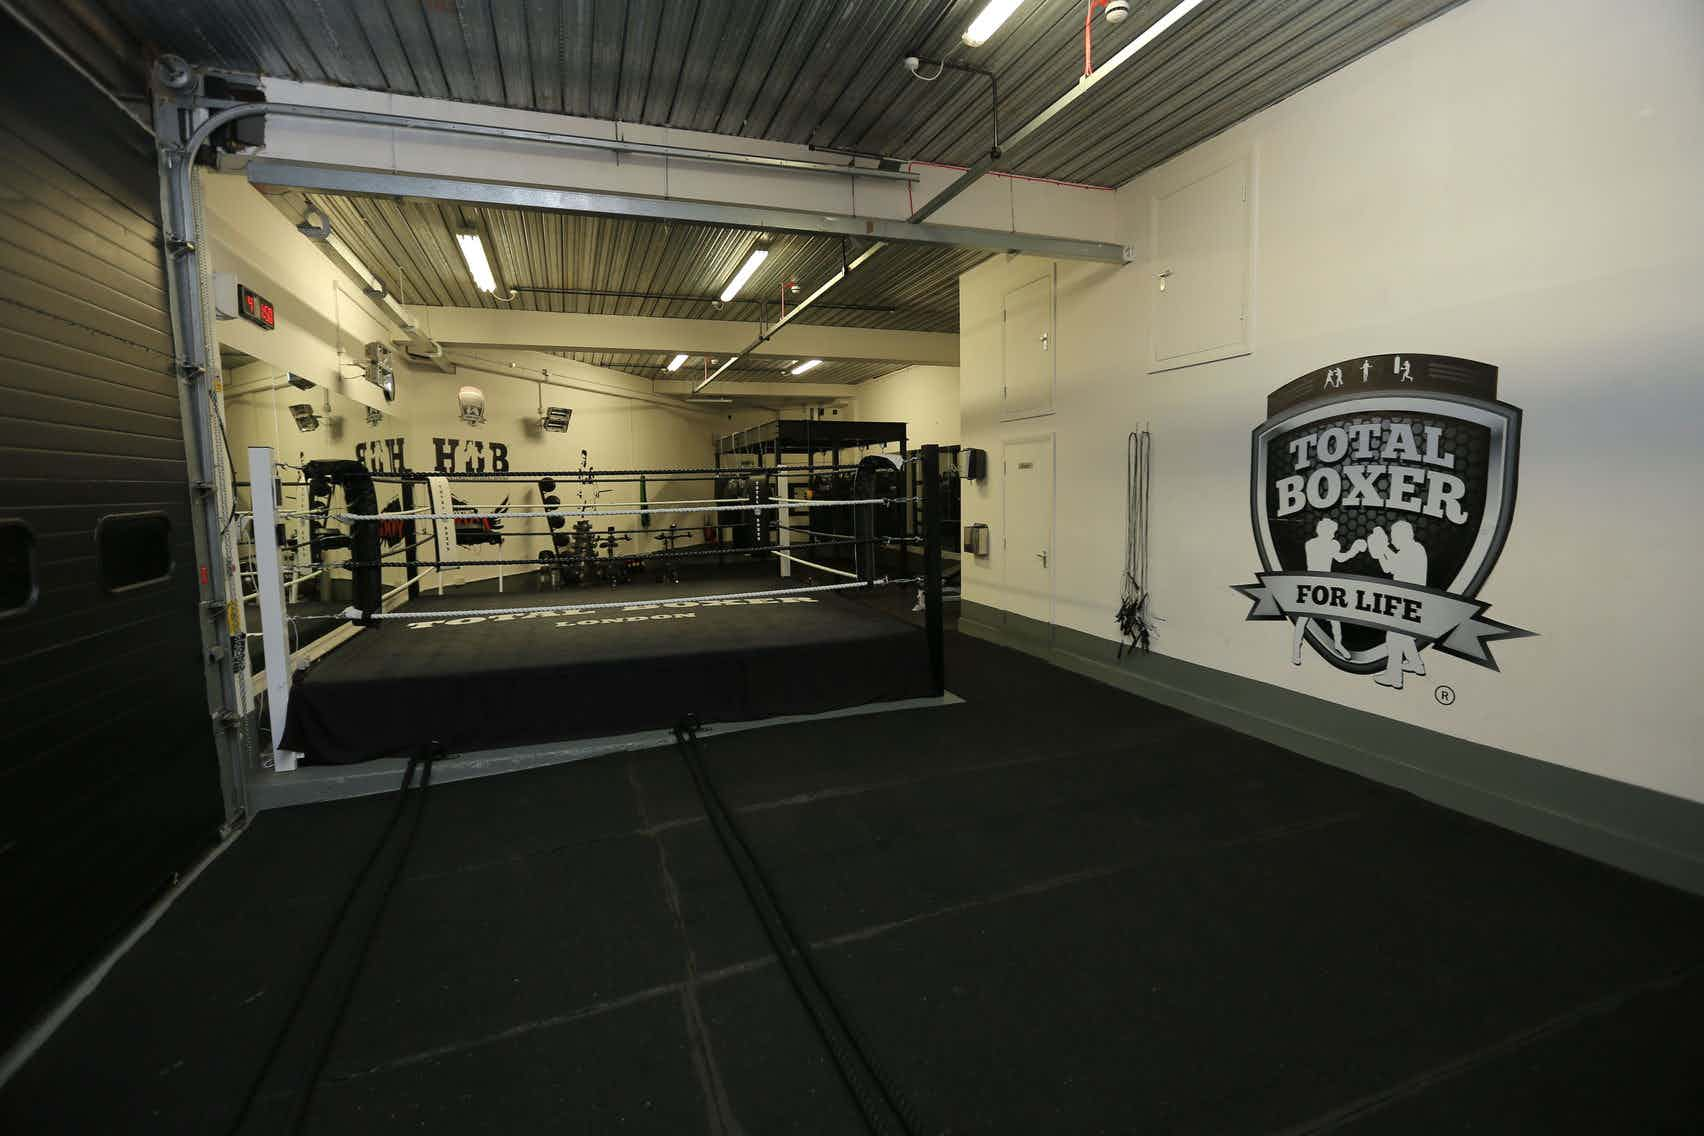 Book boxing gym and meeting rooms total boxer london u2013 headbox